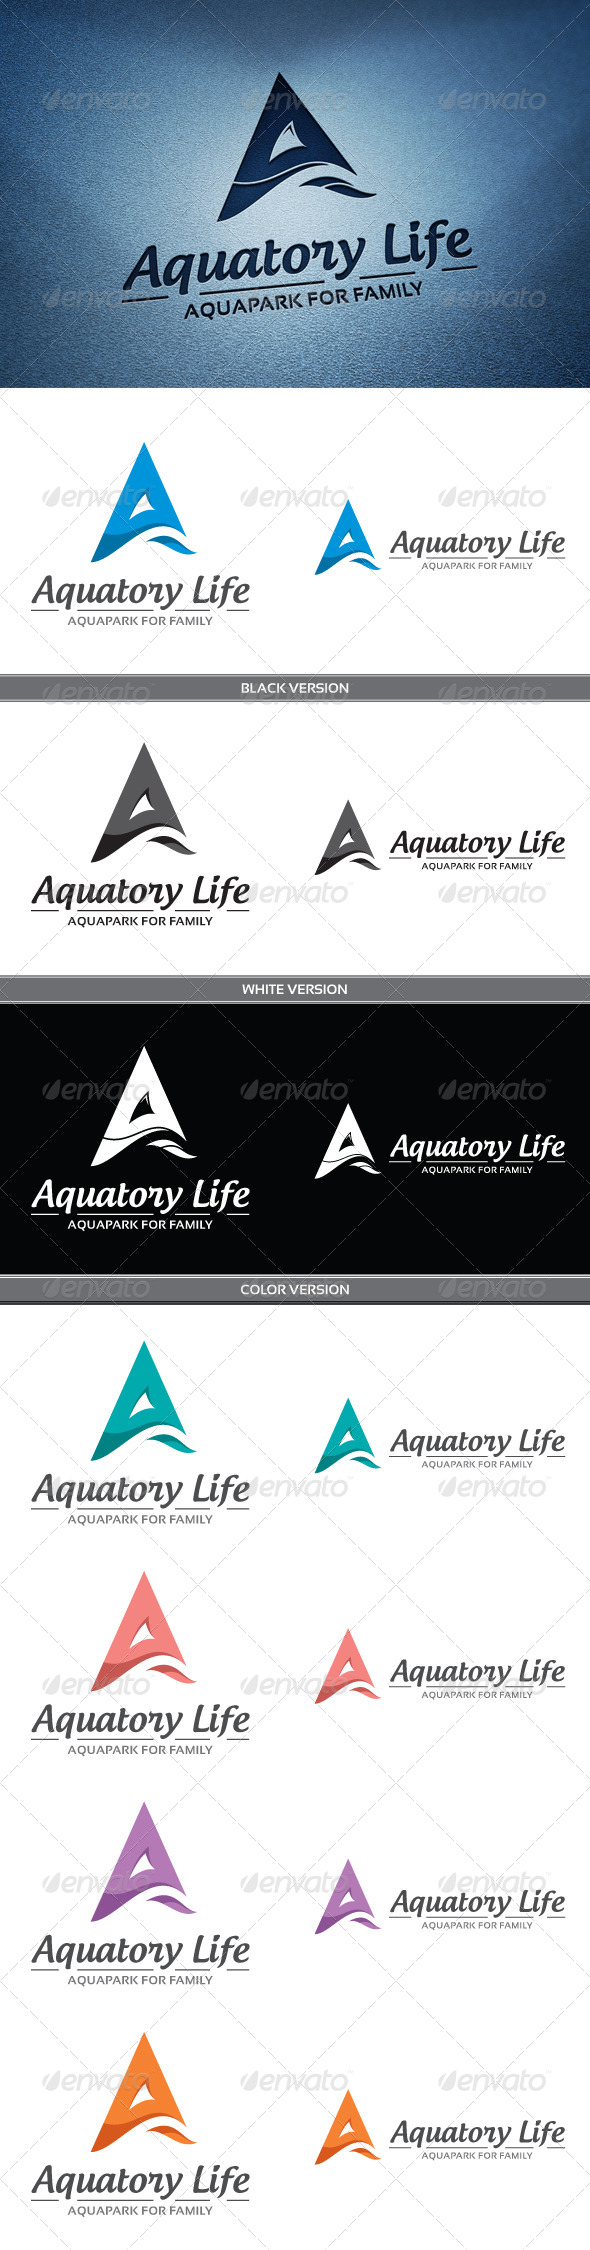 GraphicRiver Aquatory Life 3888985